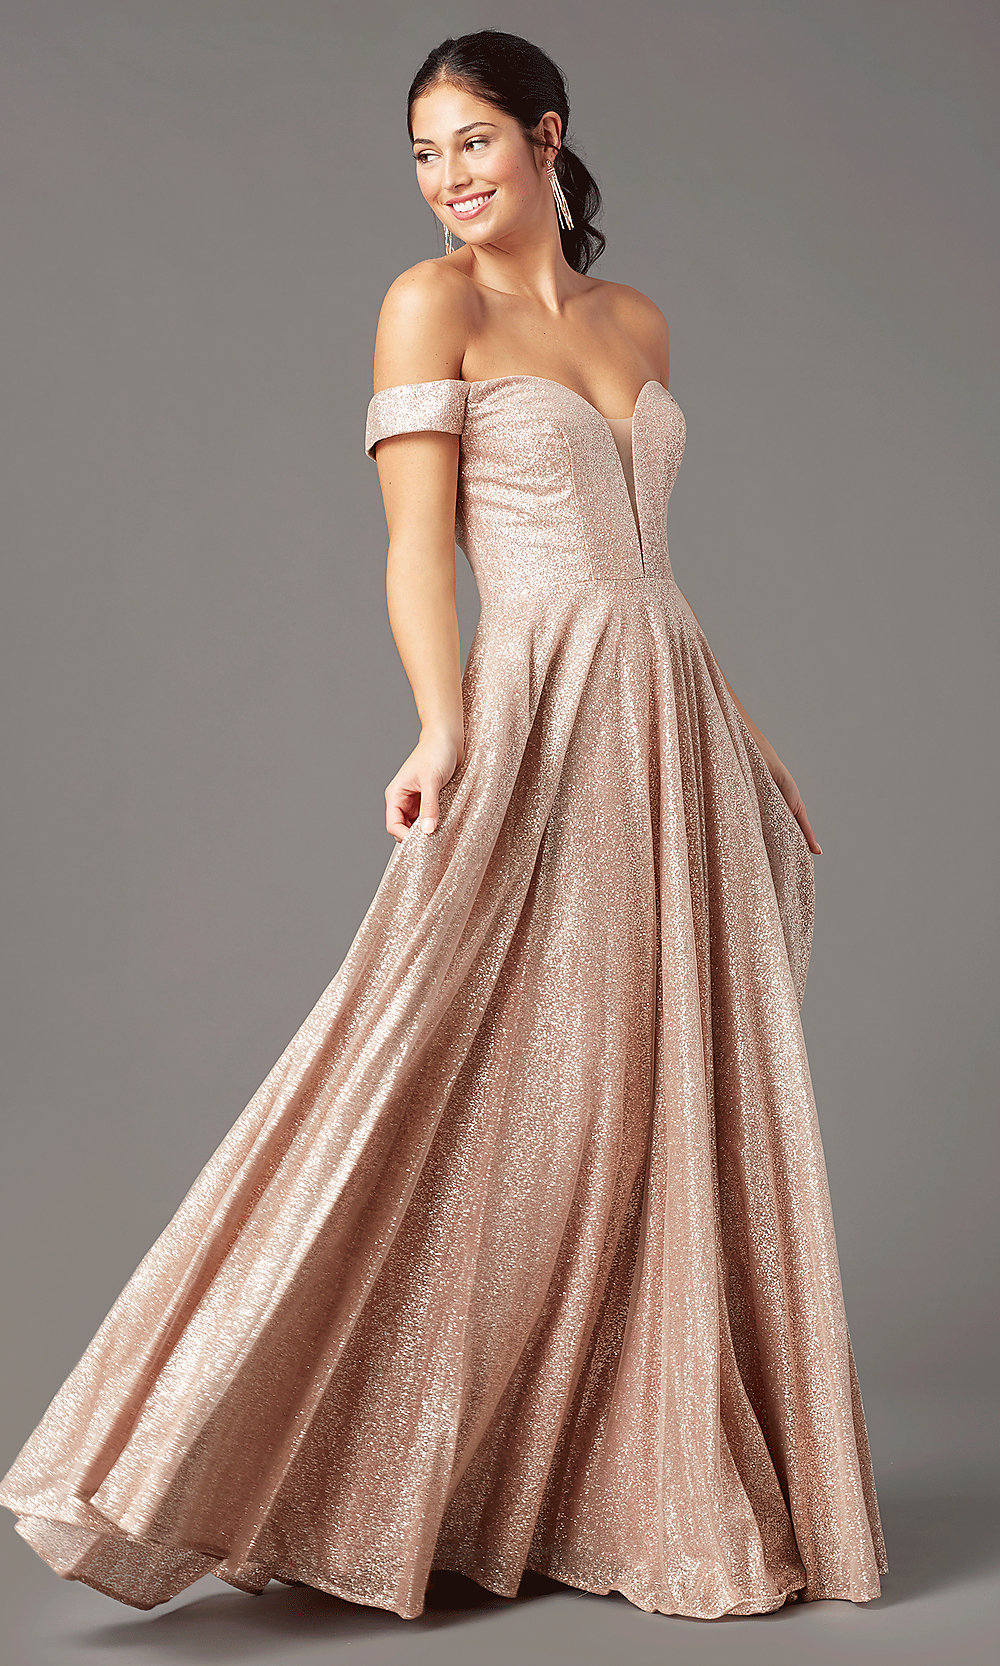 Long Sparkly Formal Prom Dress - PromGirl